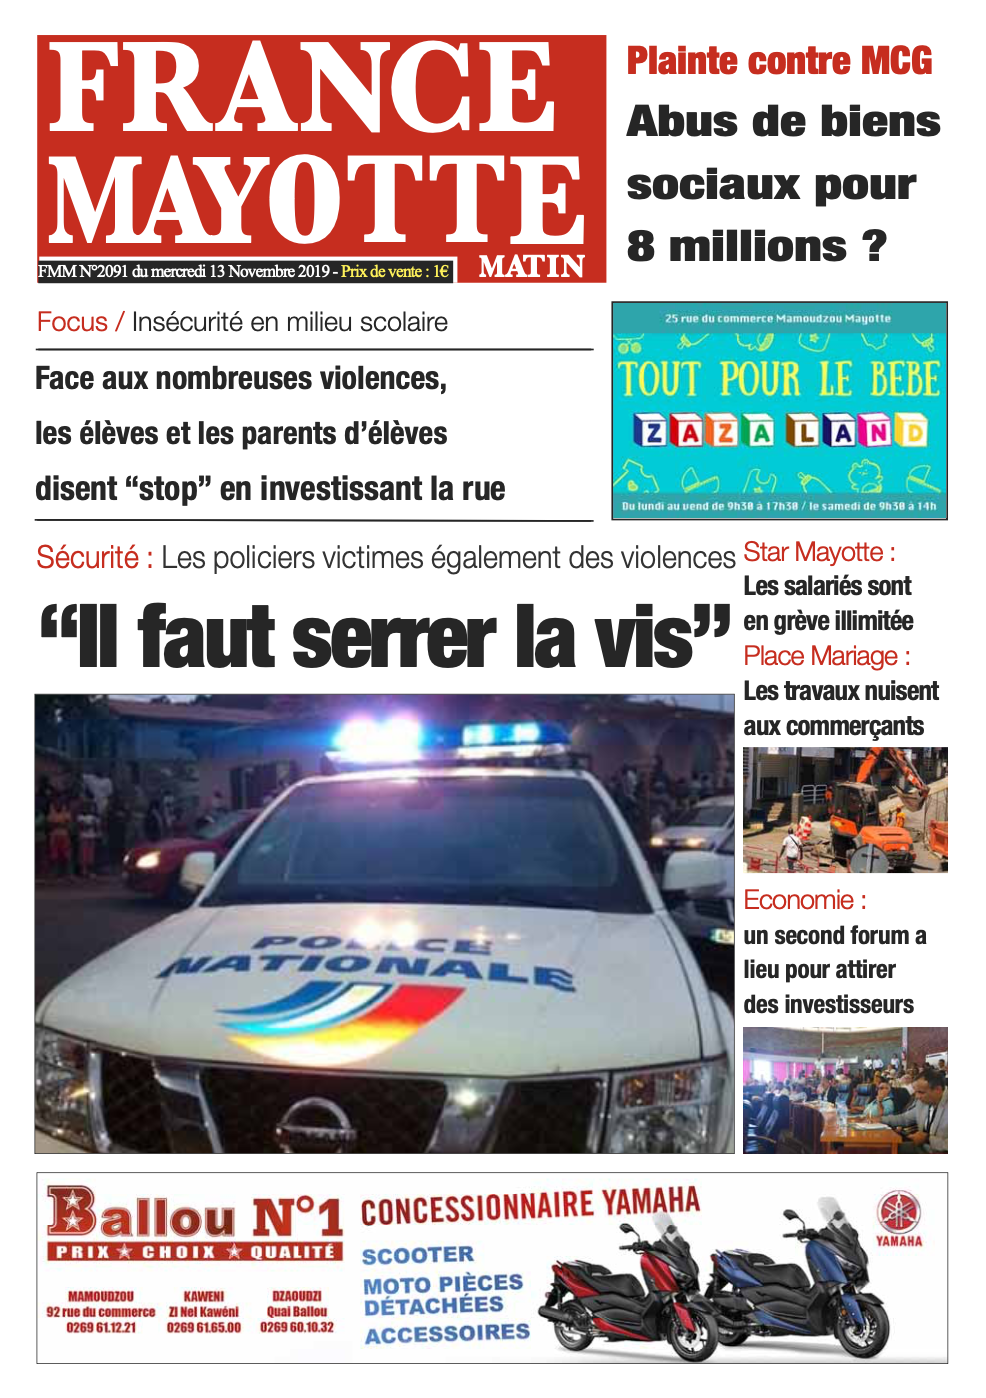 France Mayotte Mercredi 13 novembre 2019